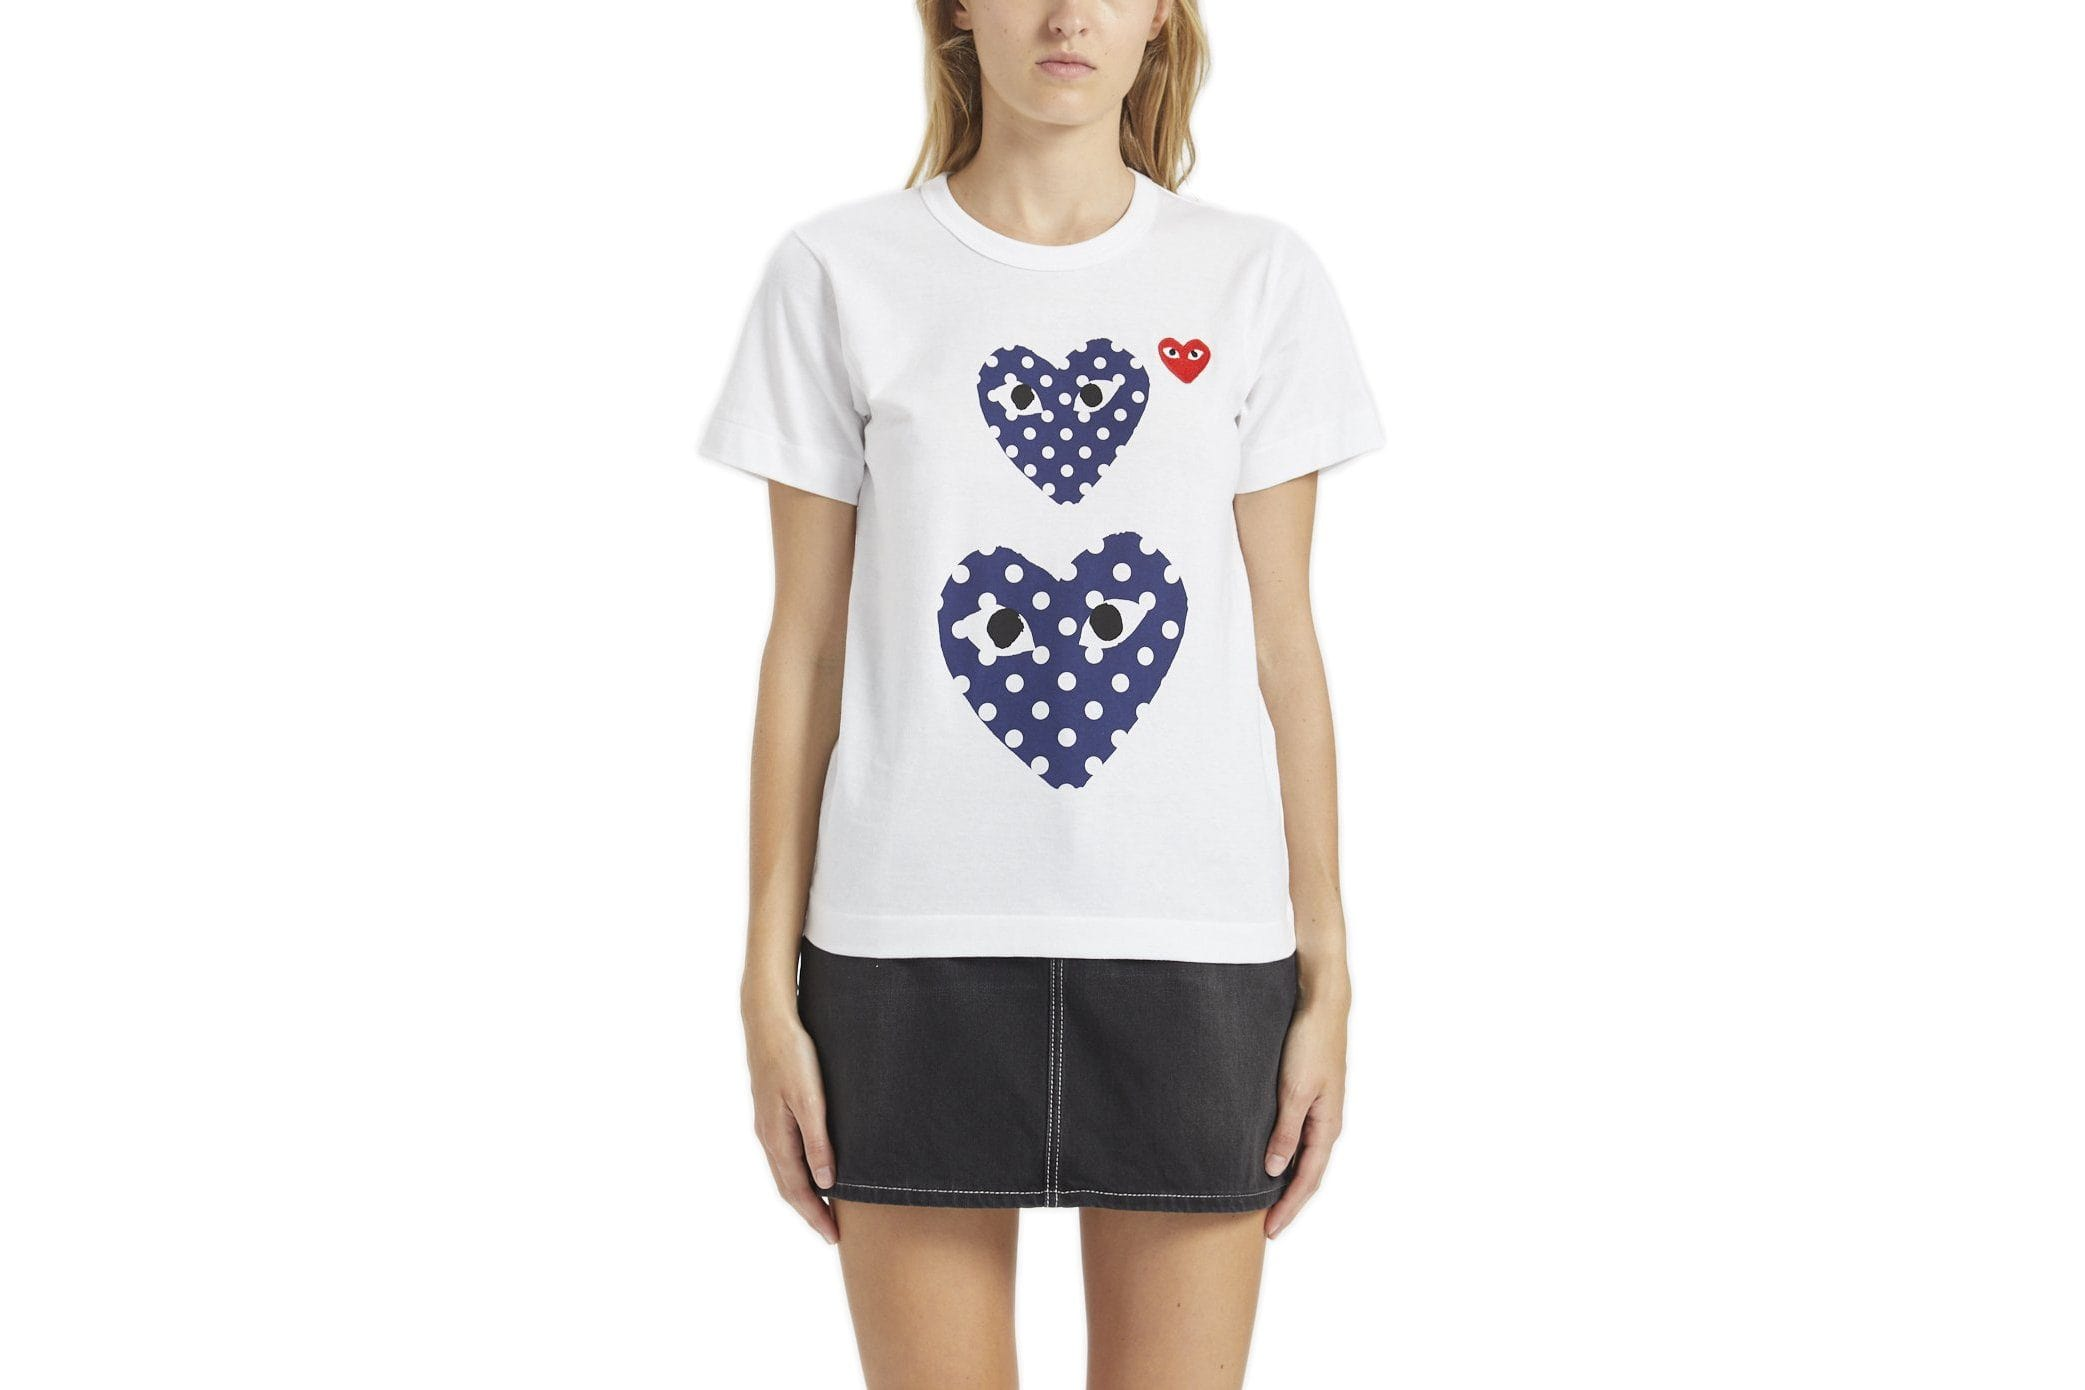 SMALL RED HEART/TWO POLKA DOT HEARTS - AZT237